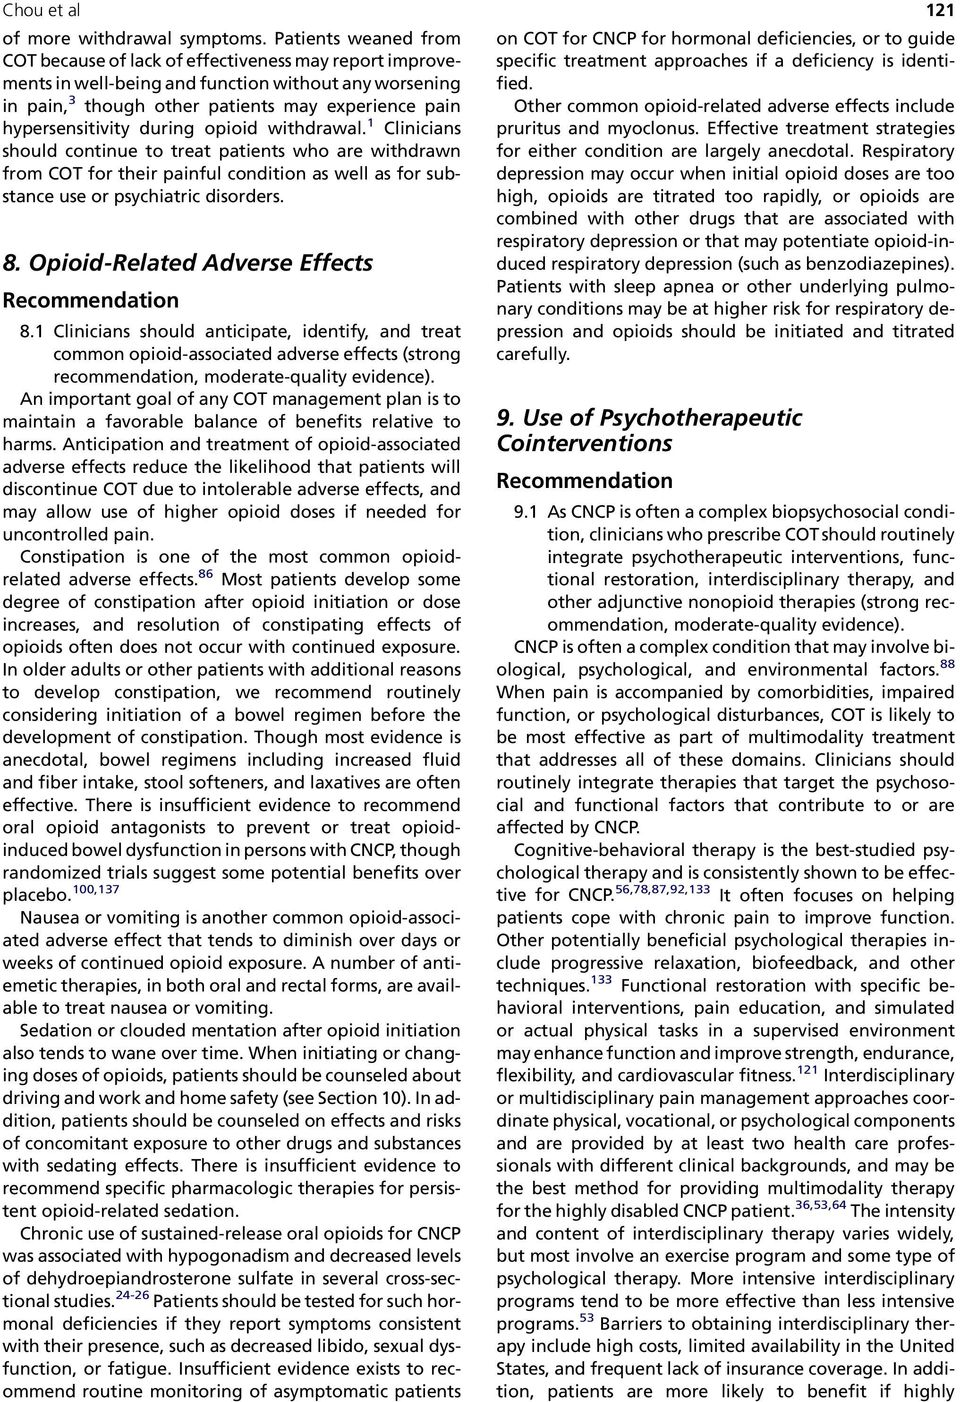 hypersensitivity during opioid withdrawal. 1 Clinicians should continue to treat patients who are withdrawn from COT for their painful condition as well as for substance use or psychiatric disorders.